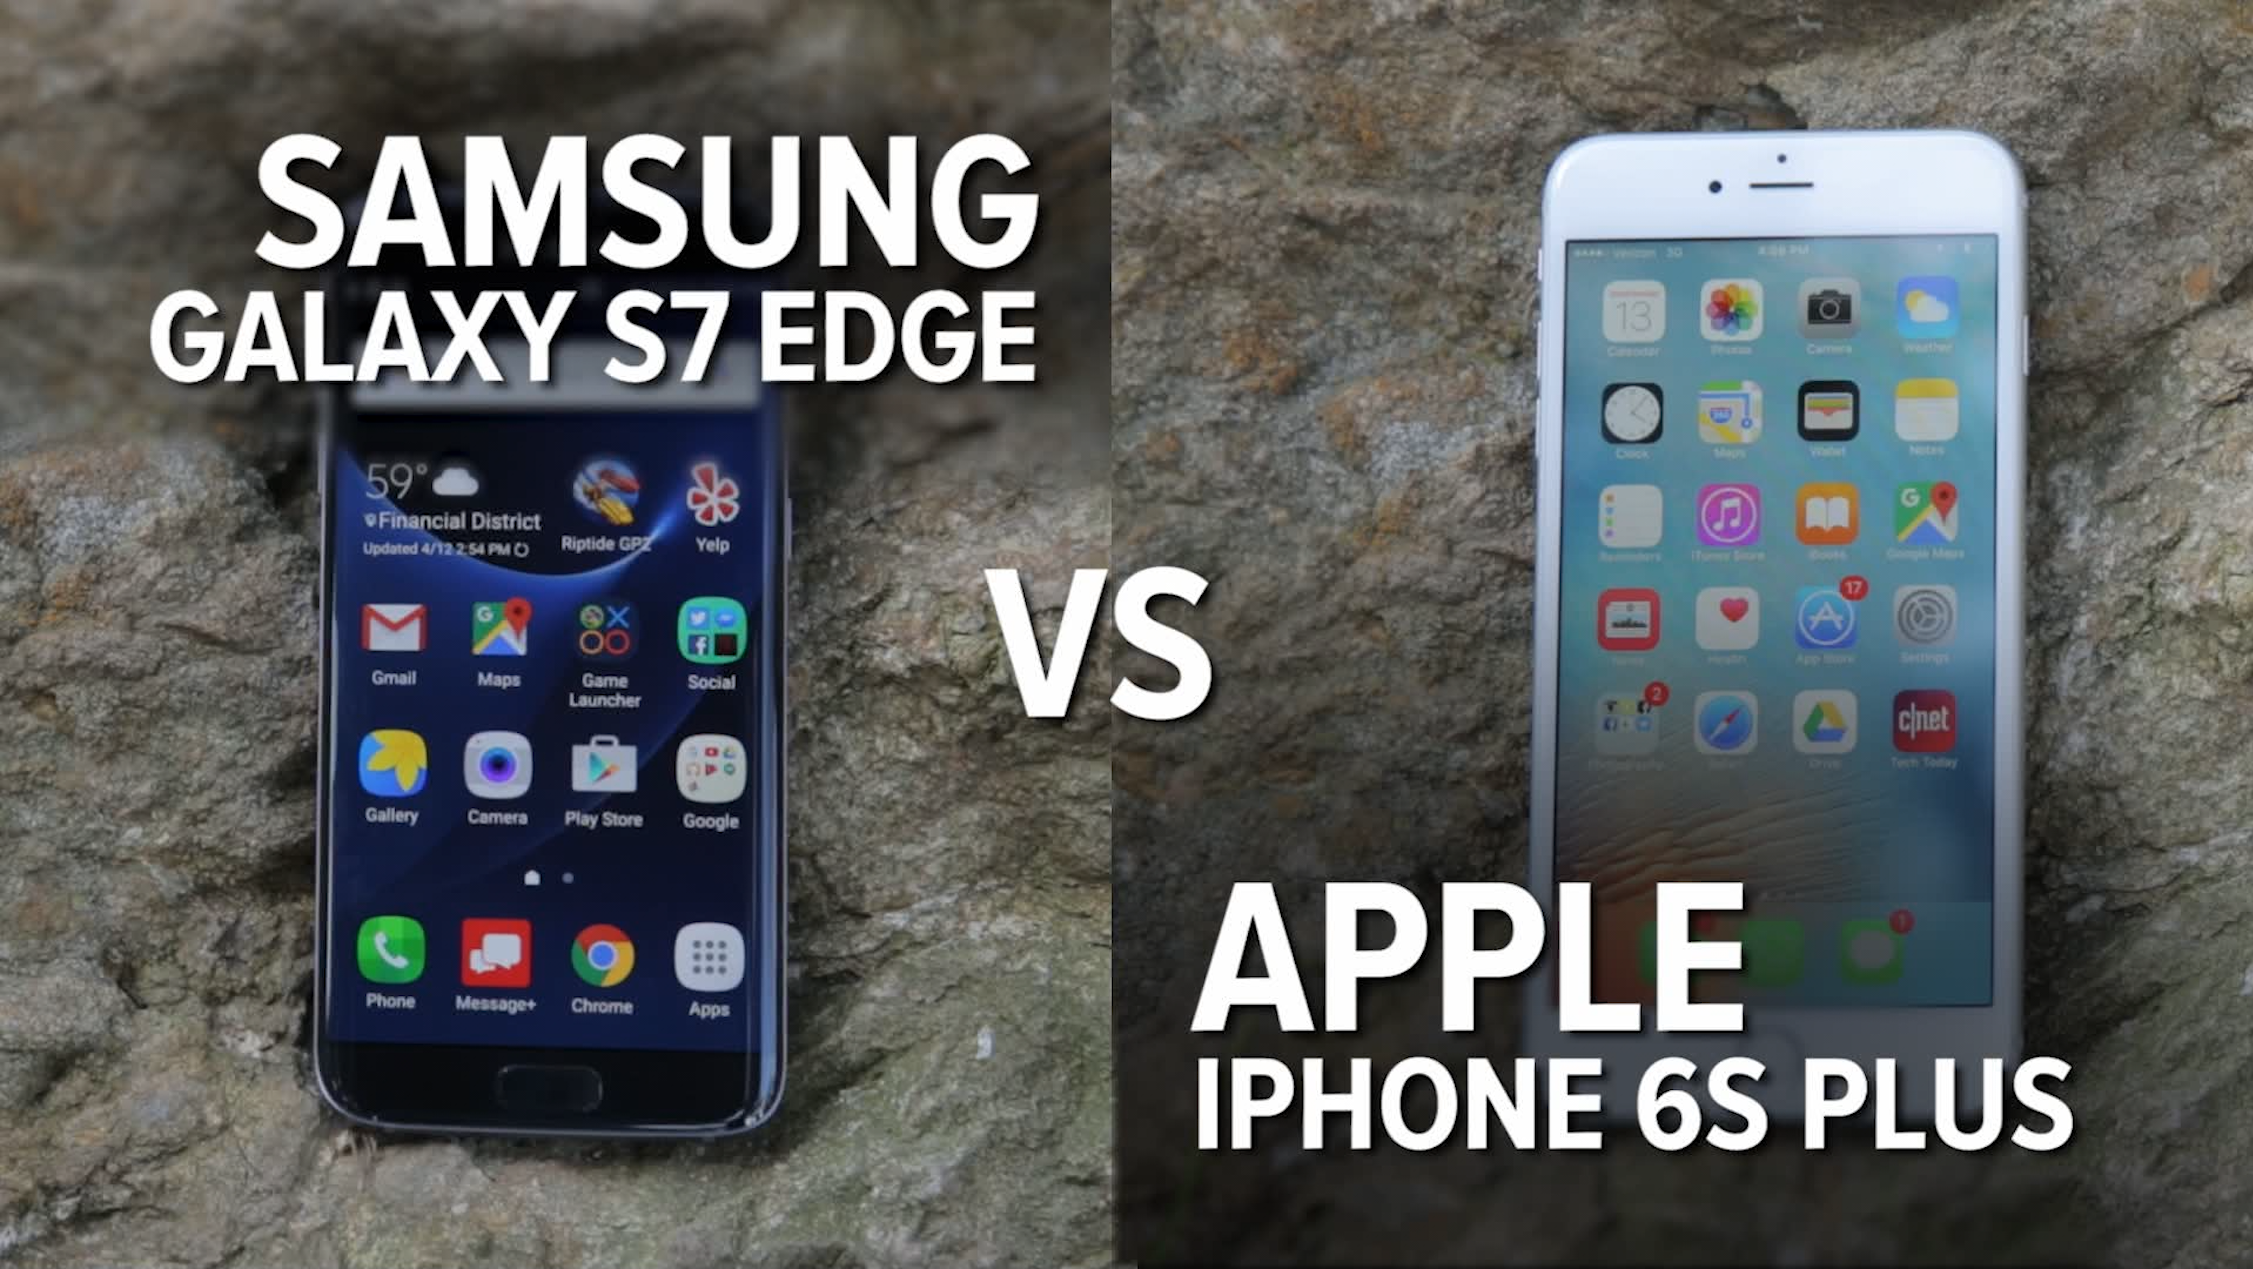 Camera comparison: The Galaxy S7 Edge vs. the iPhone 6S Plus